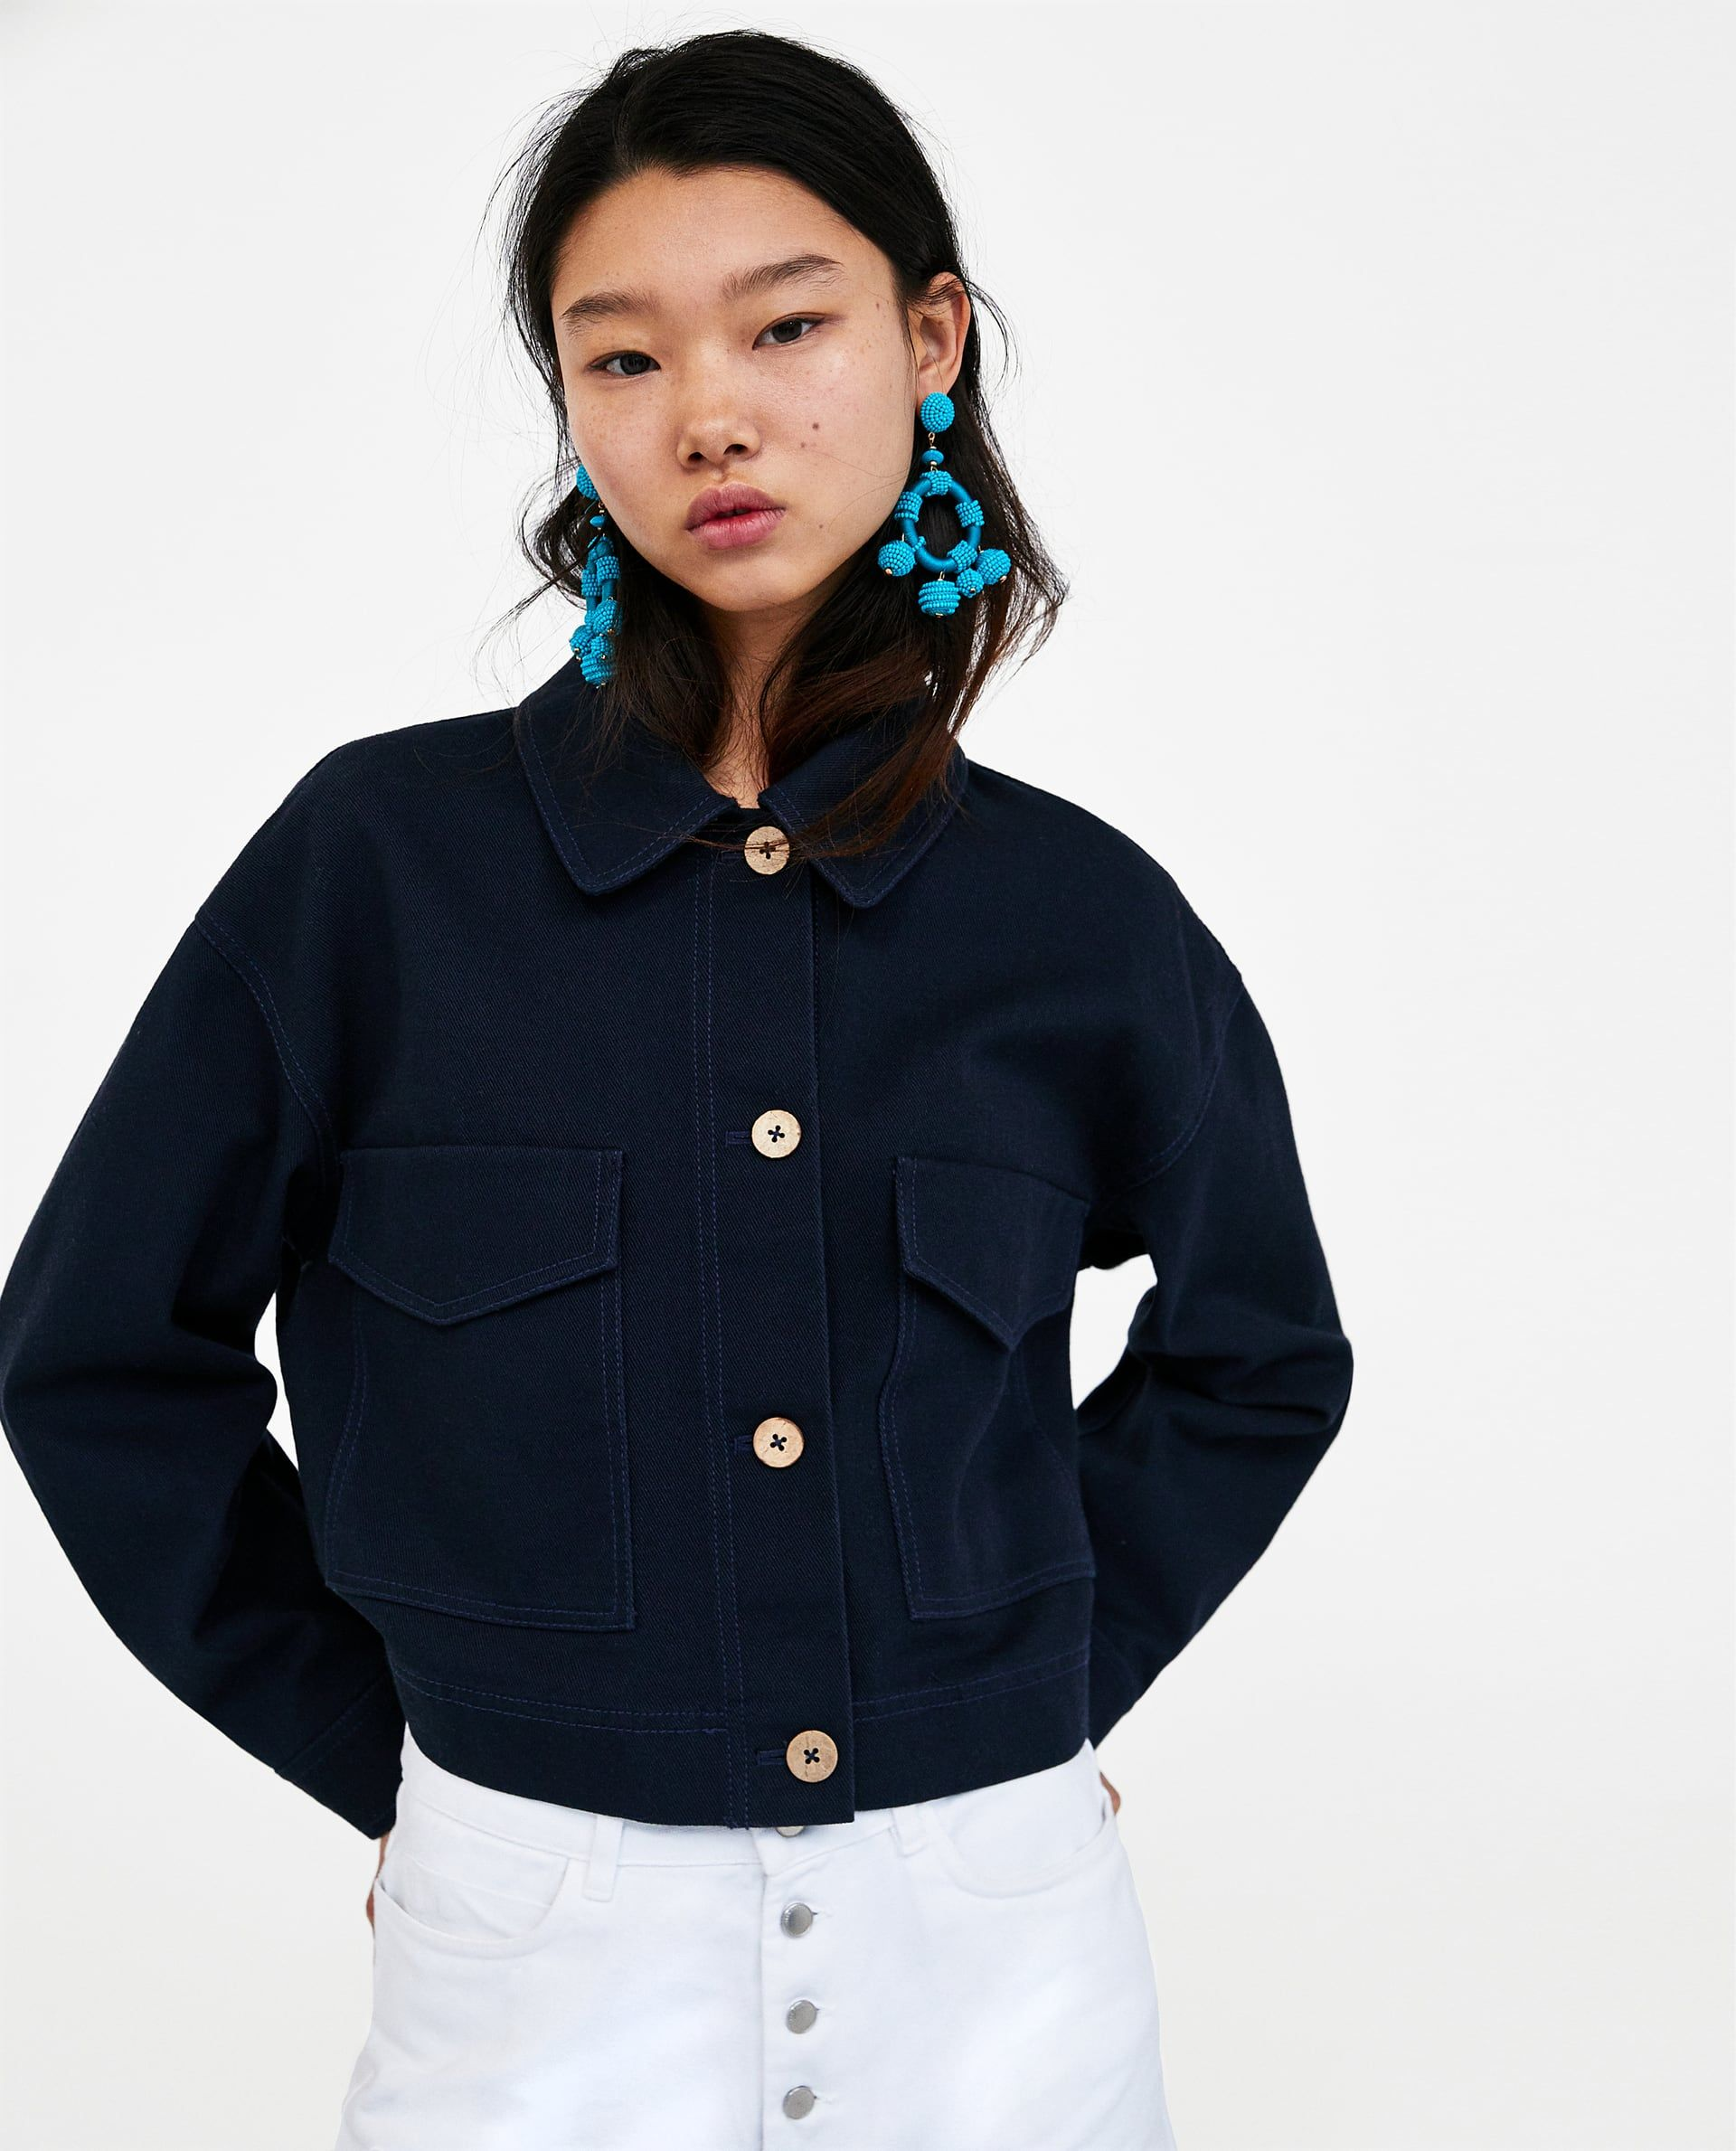 a5cb3bbb71e Image 2 of CROPPED JACKET WITH POCKETS from Zara | high fashion ...